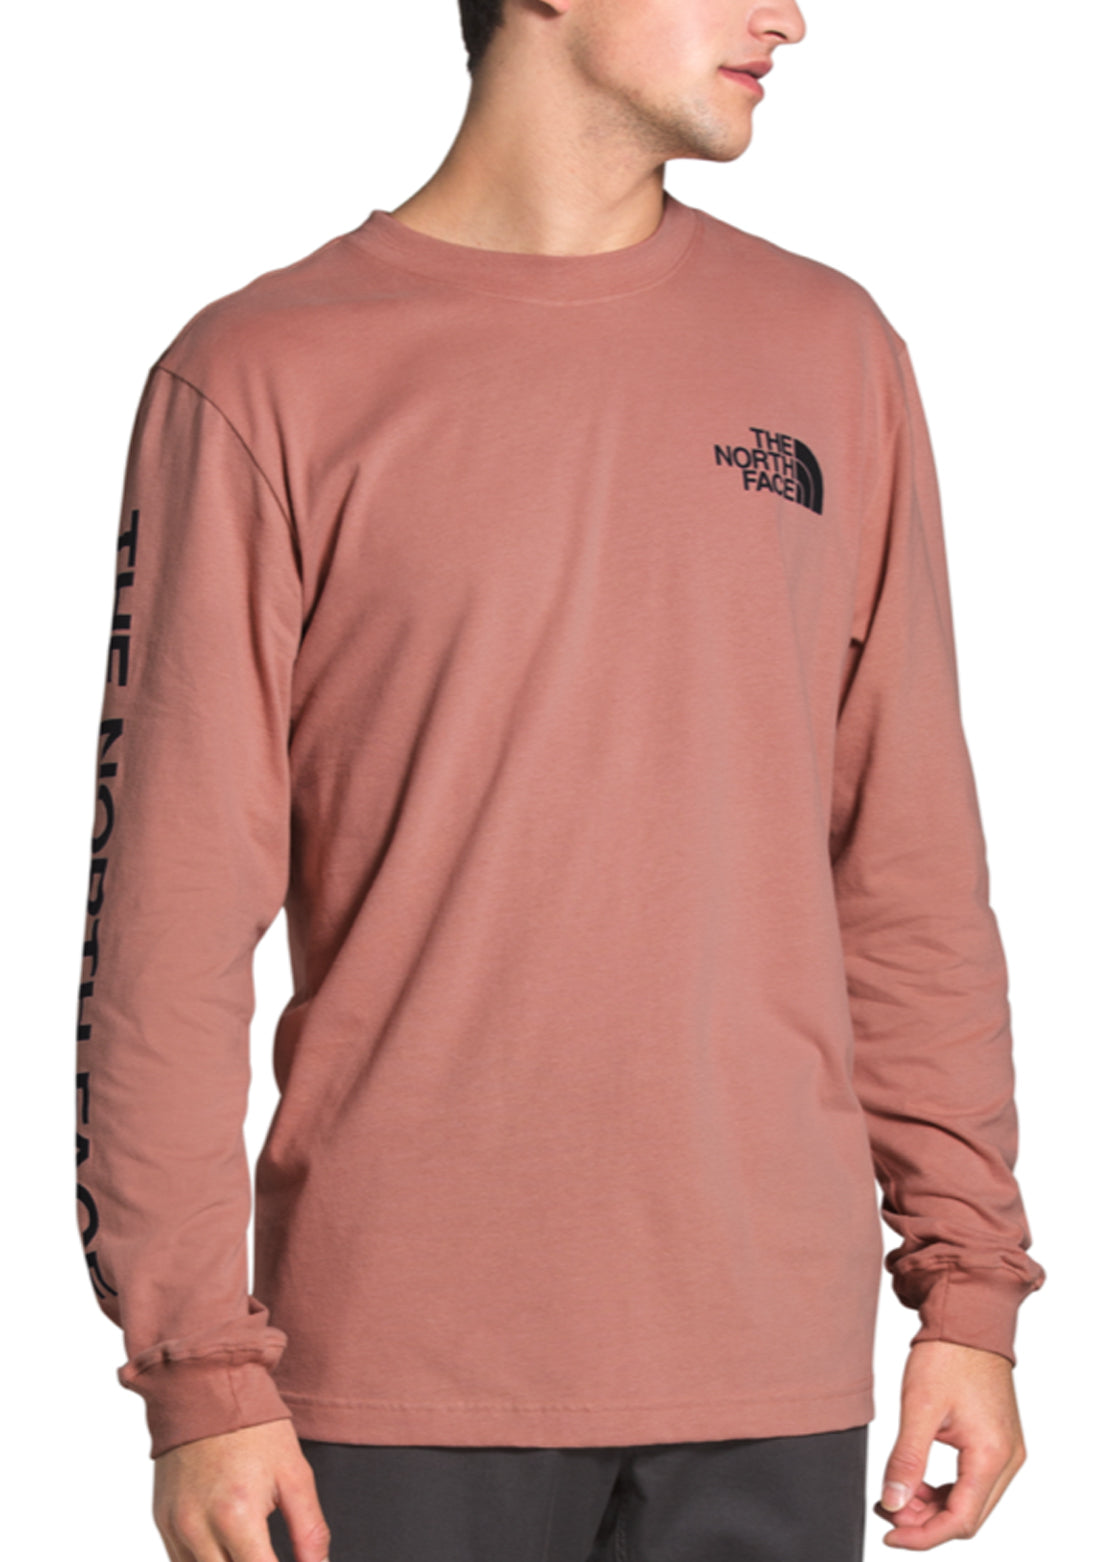 The North Face Men's TNF Sleeve Hit Longsleeve Shirt Pink Clay/TNF Black